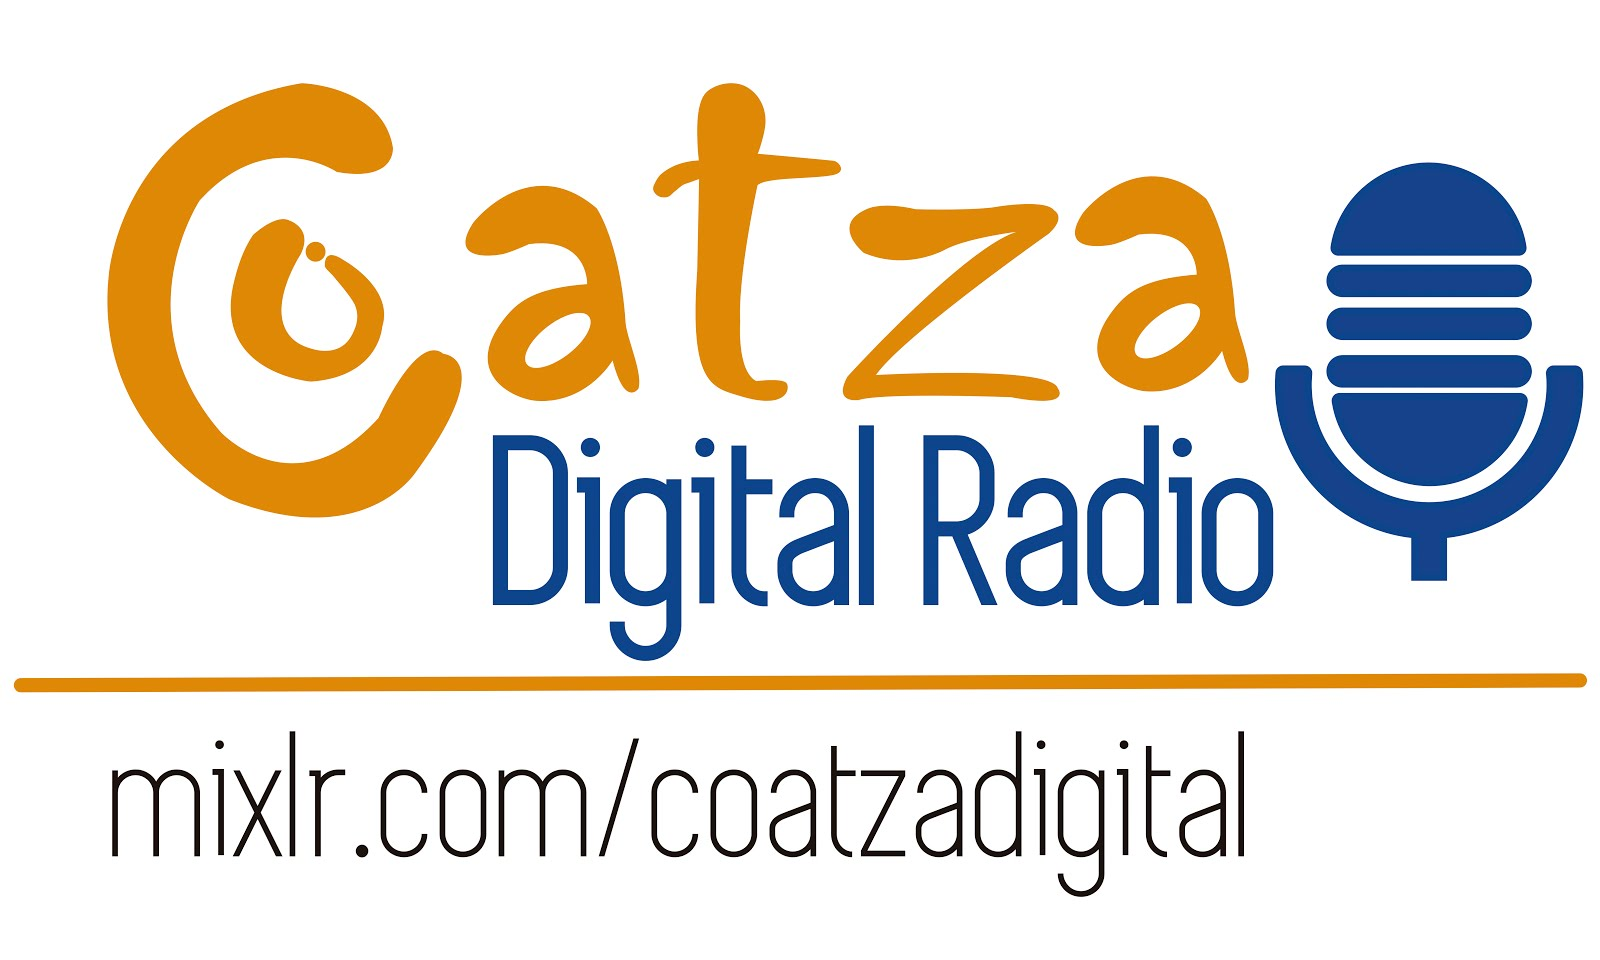 PROGRAMAS DE COATZA DIGITAL RADIO